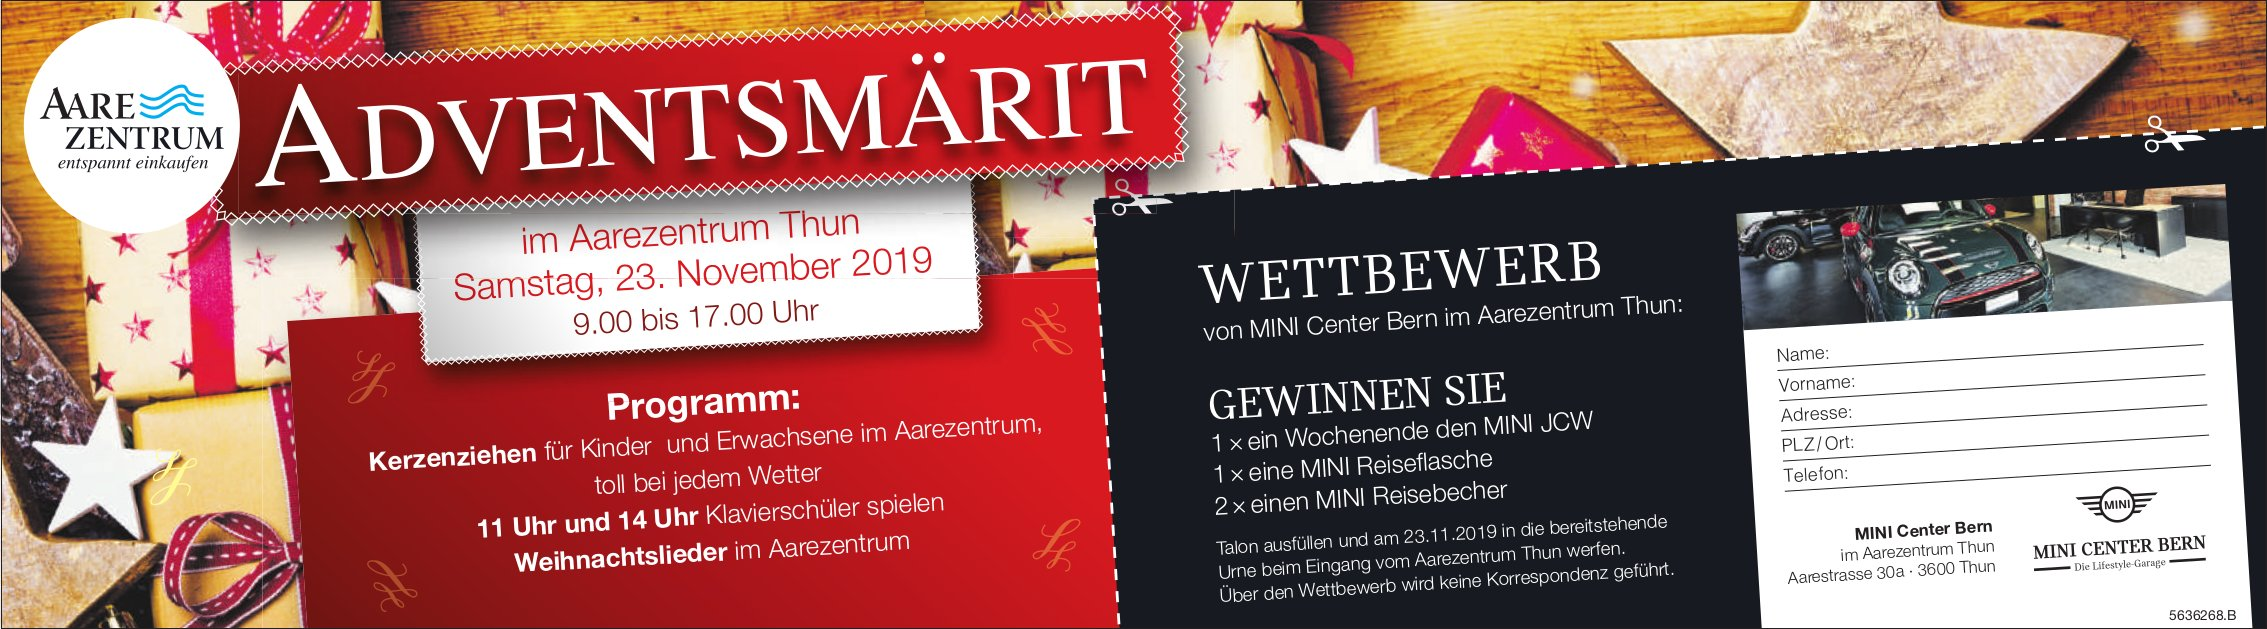 ADVENTSMÄRIT, 23. November, Aarezentrum Thun - Wettbewerb